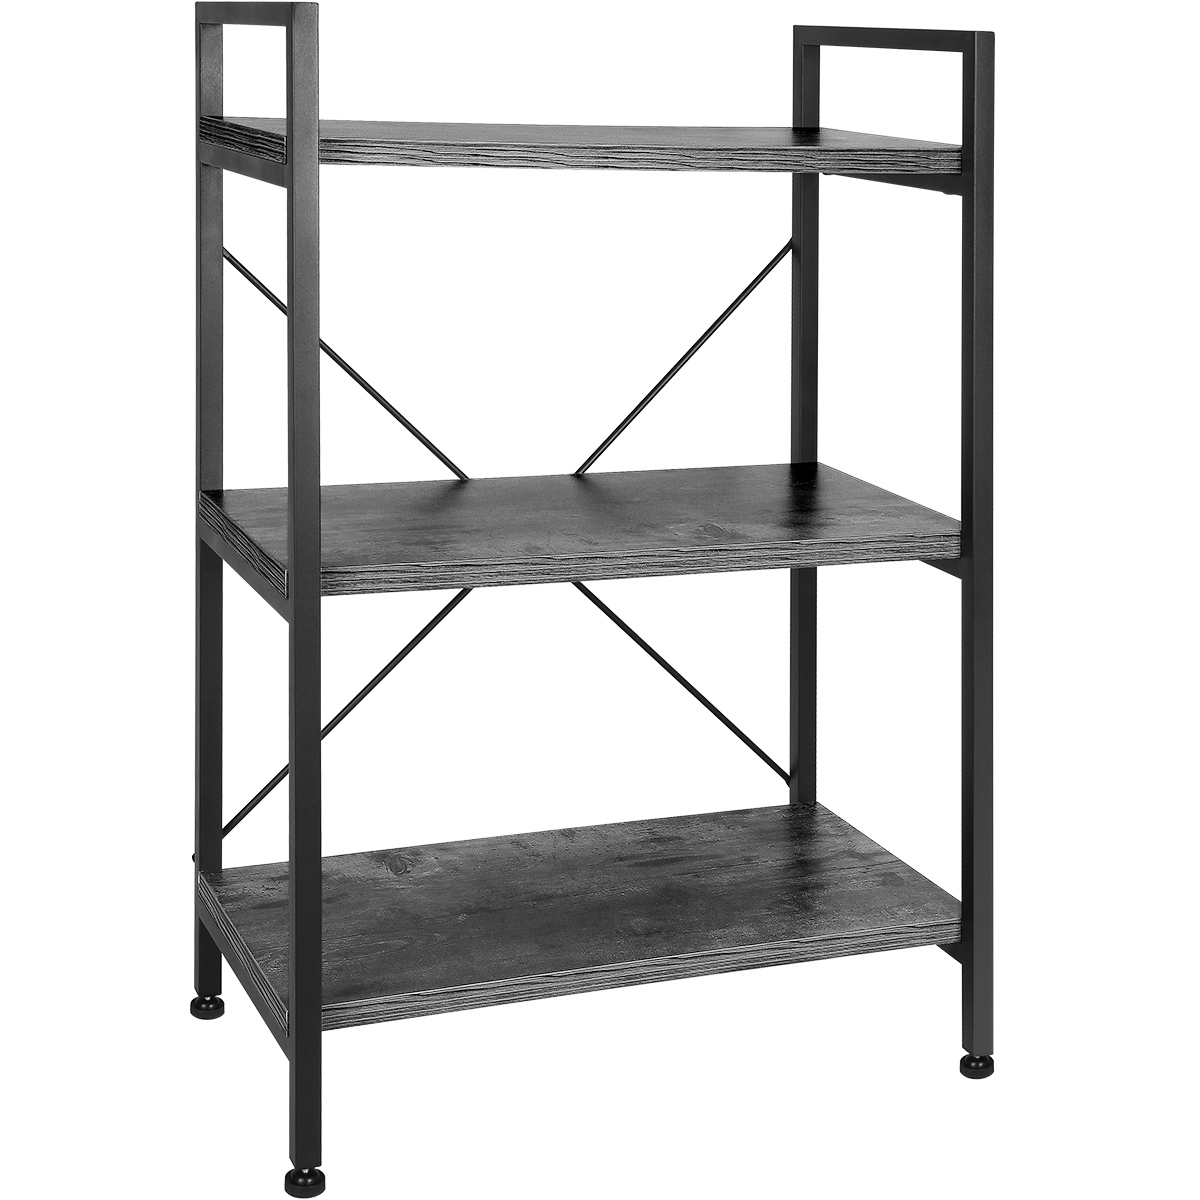 TomCare Bookshelf 3-Tier Bookcase Book Shelf Shelves Display Rack Office Storage Wood Look with Metal Frame Multifunctional Furniture for Entryway Living Room Bedroom Grey